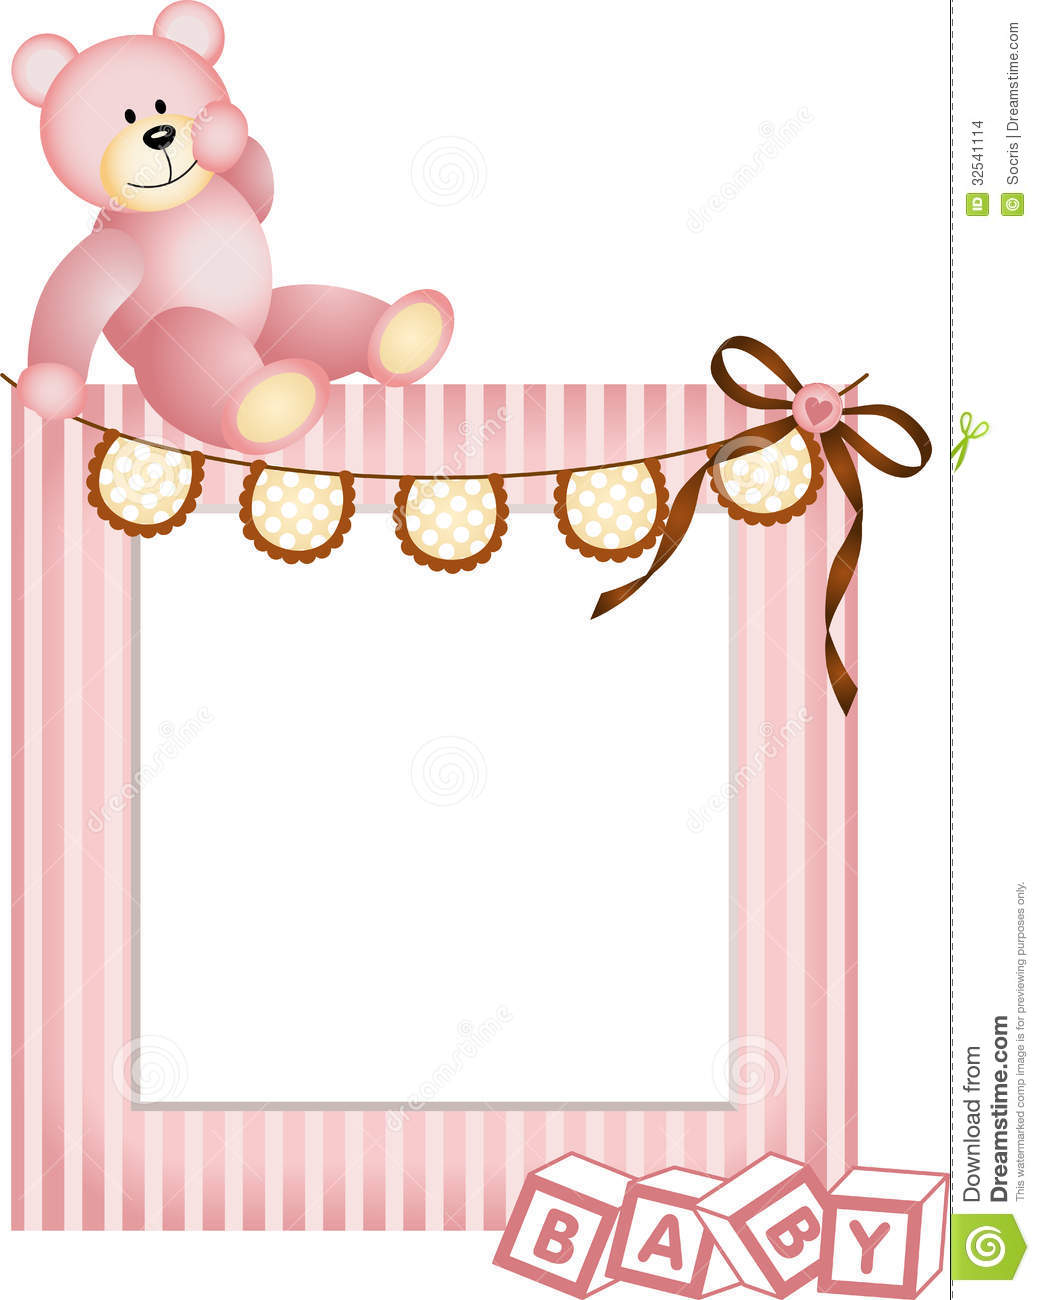 baby teddy bear clip art